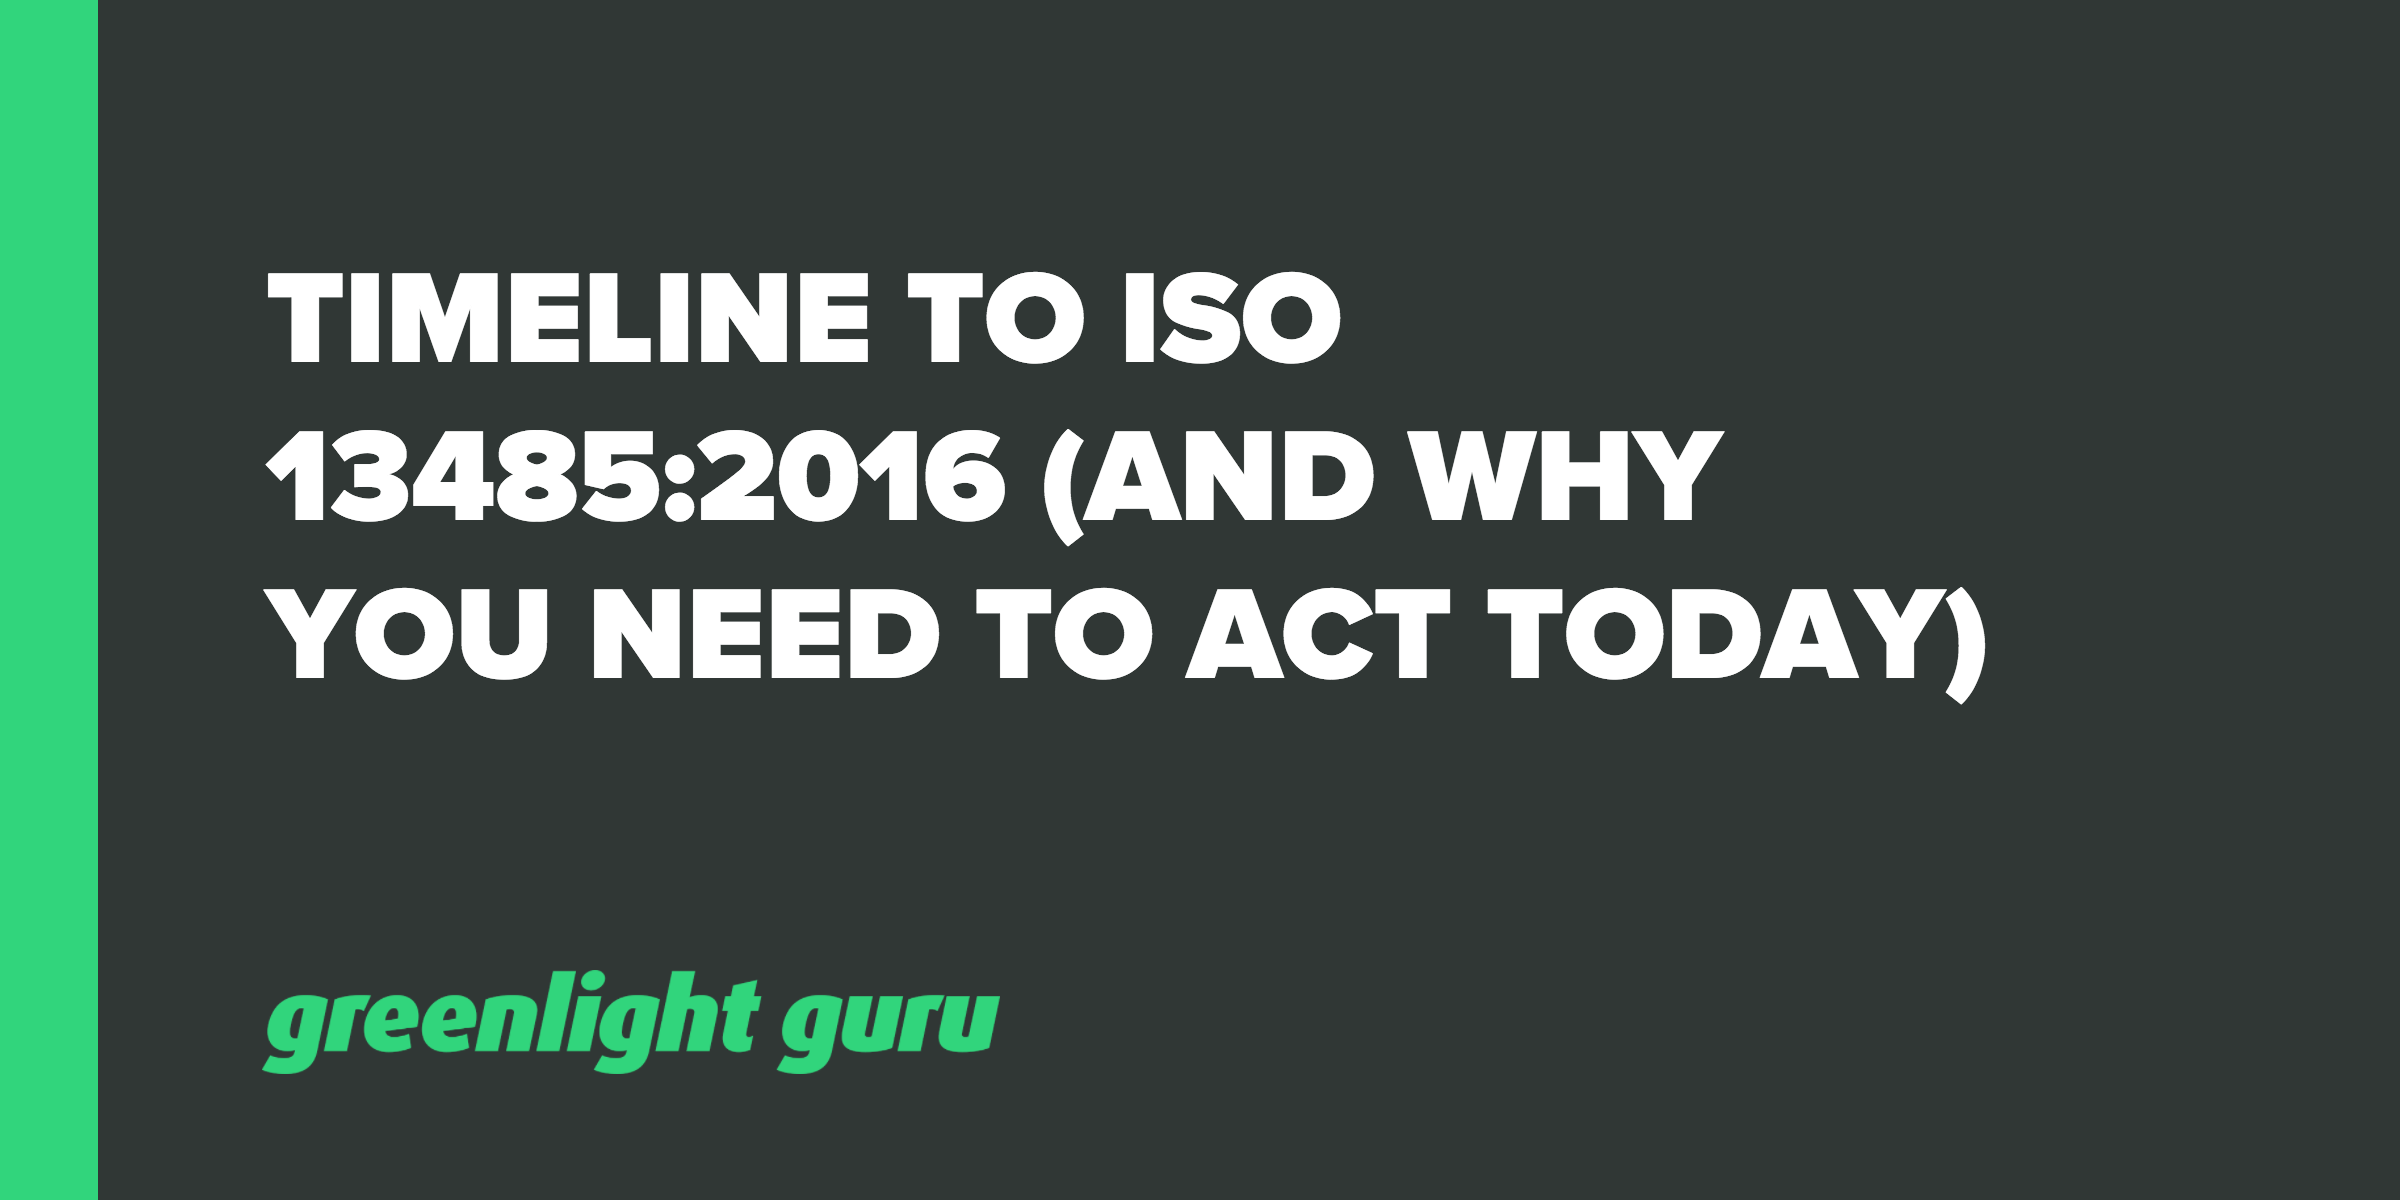 Timeline to ISO 13485:2016 (And Why You Need to Act Today) - Featured Image